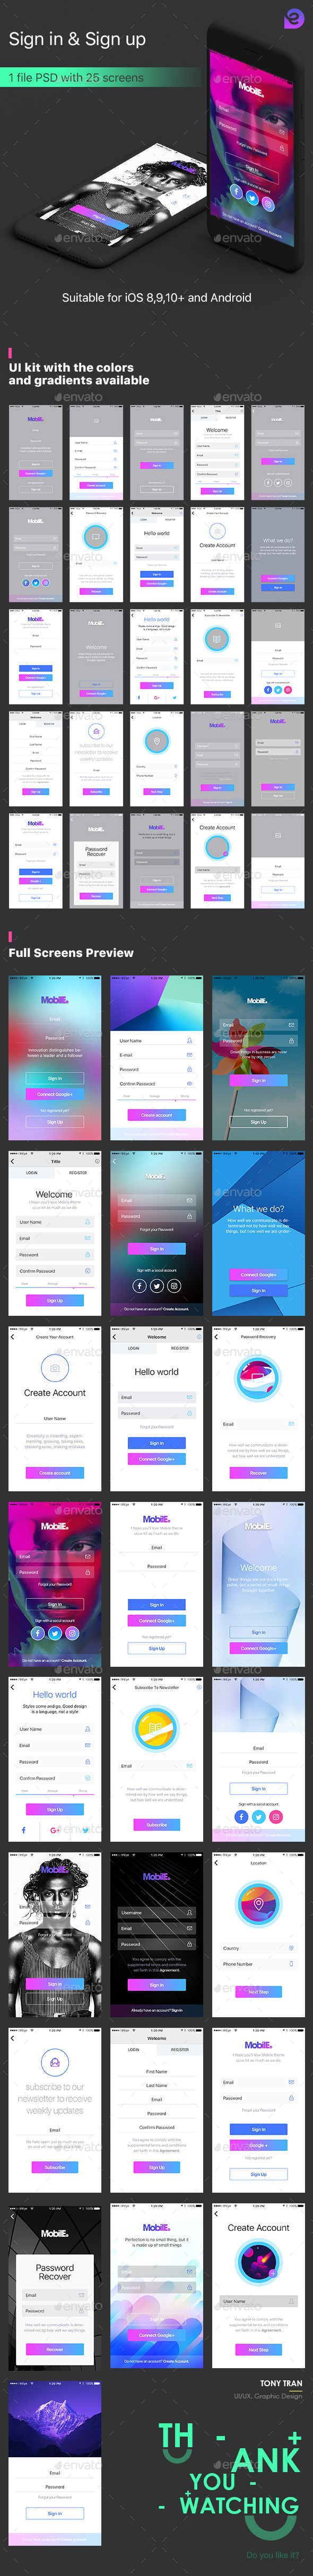 Laundry @ Home App UI Kit (User Interfaces)